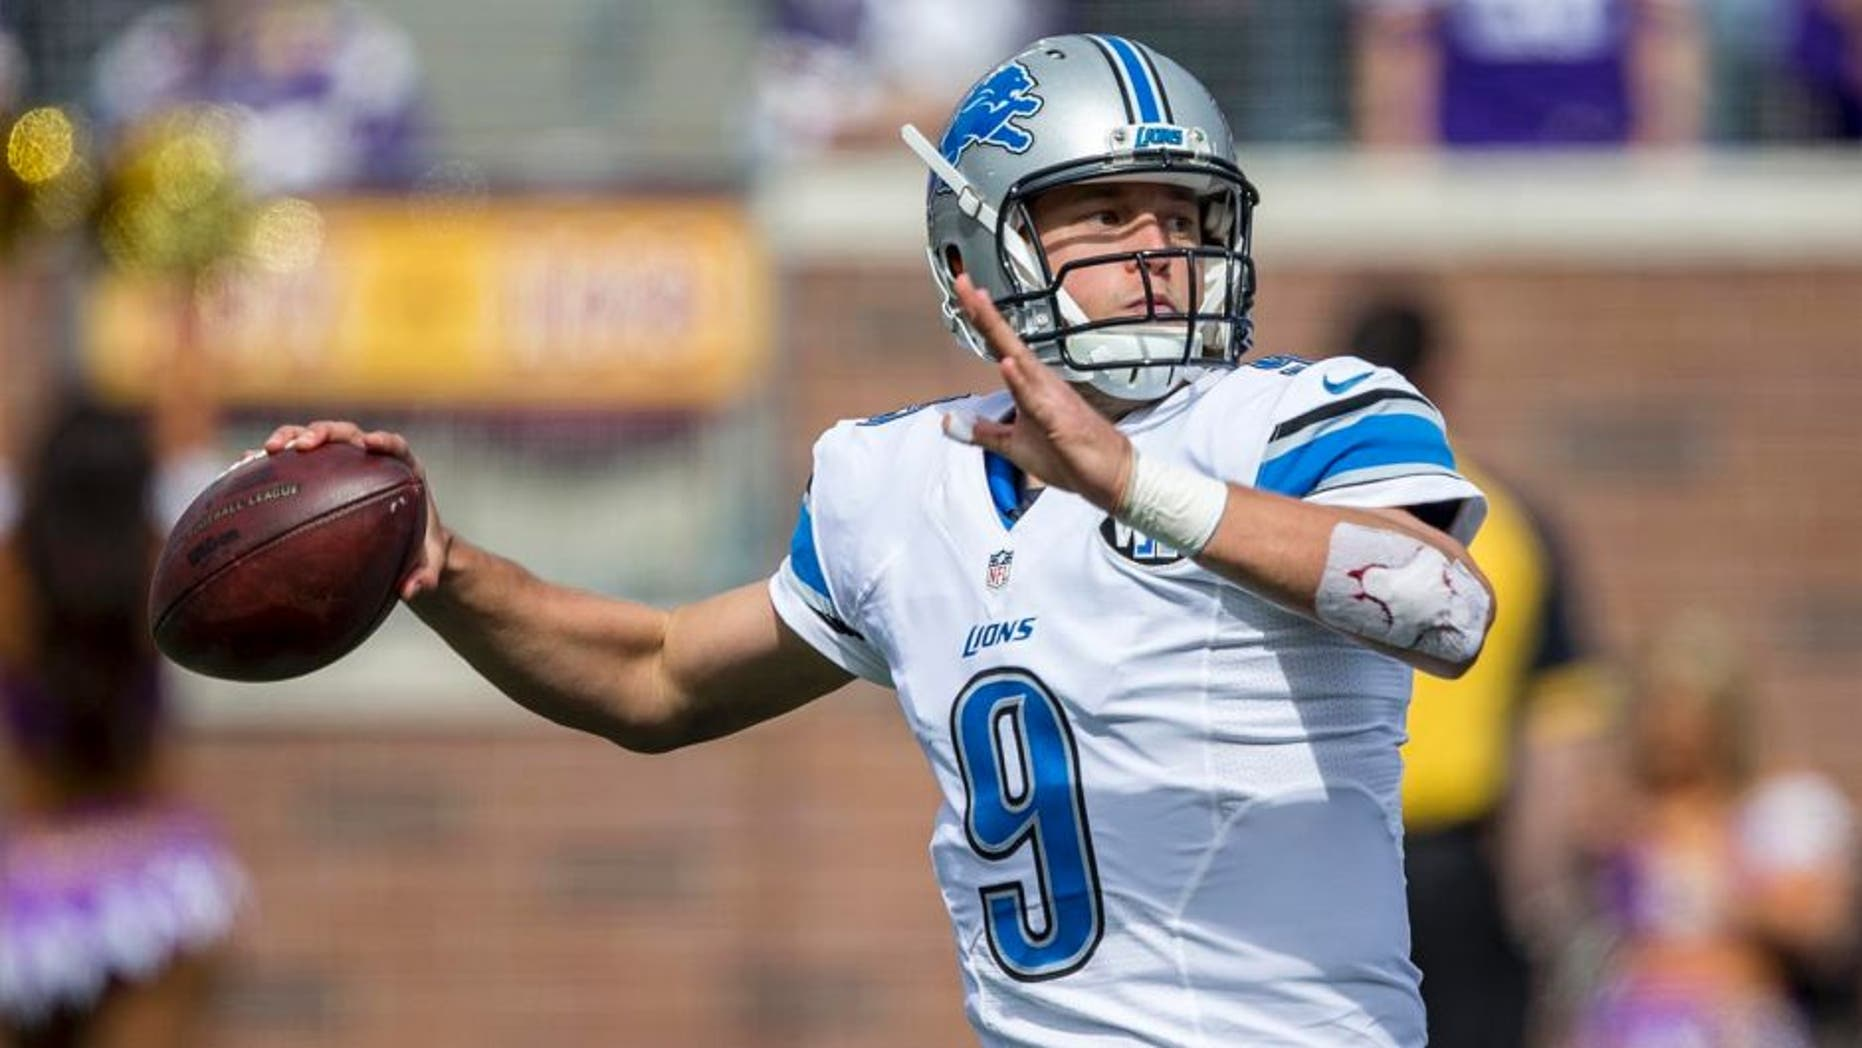 Detroit Lions quarterback Matthew Stafford drops back for a pass in the first half against the Minnesota Vikings at TCF Bank Stadium in Minneapolis on Sunday, Sept. 20, 2015.